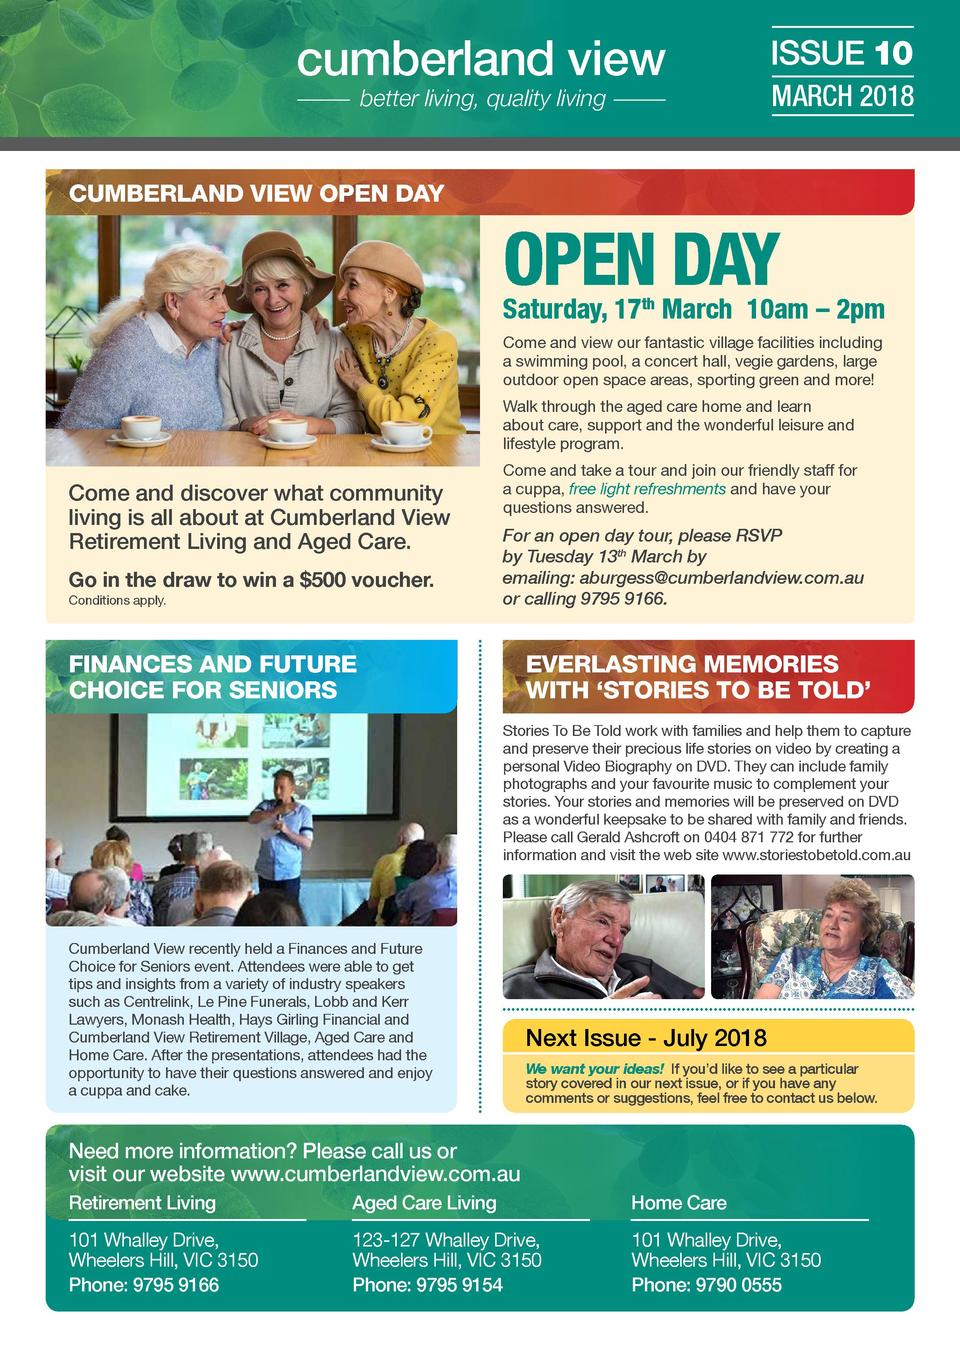 cumberland view better living, quality living  ISSUE 10 MARCH 2018  CUMBERLAND VIEW OPEN DAY  OPEN DAY  Saturday, 17th Mar...